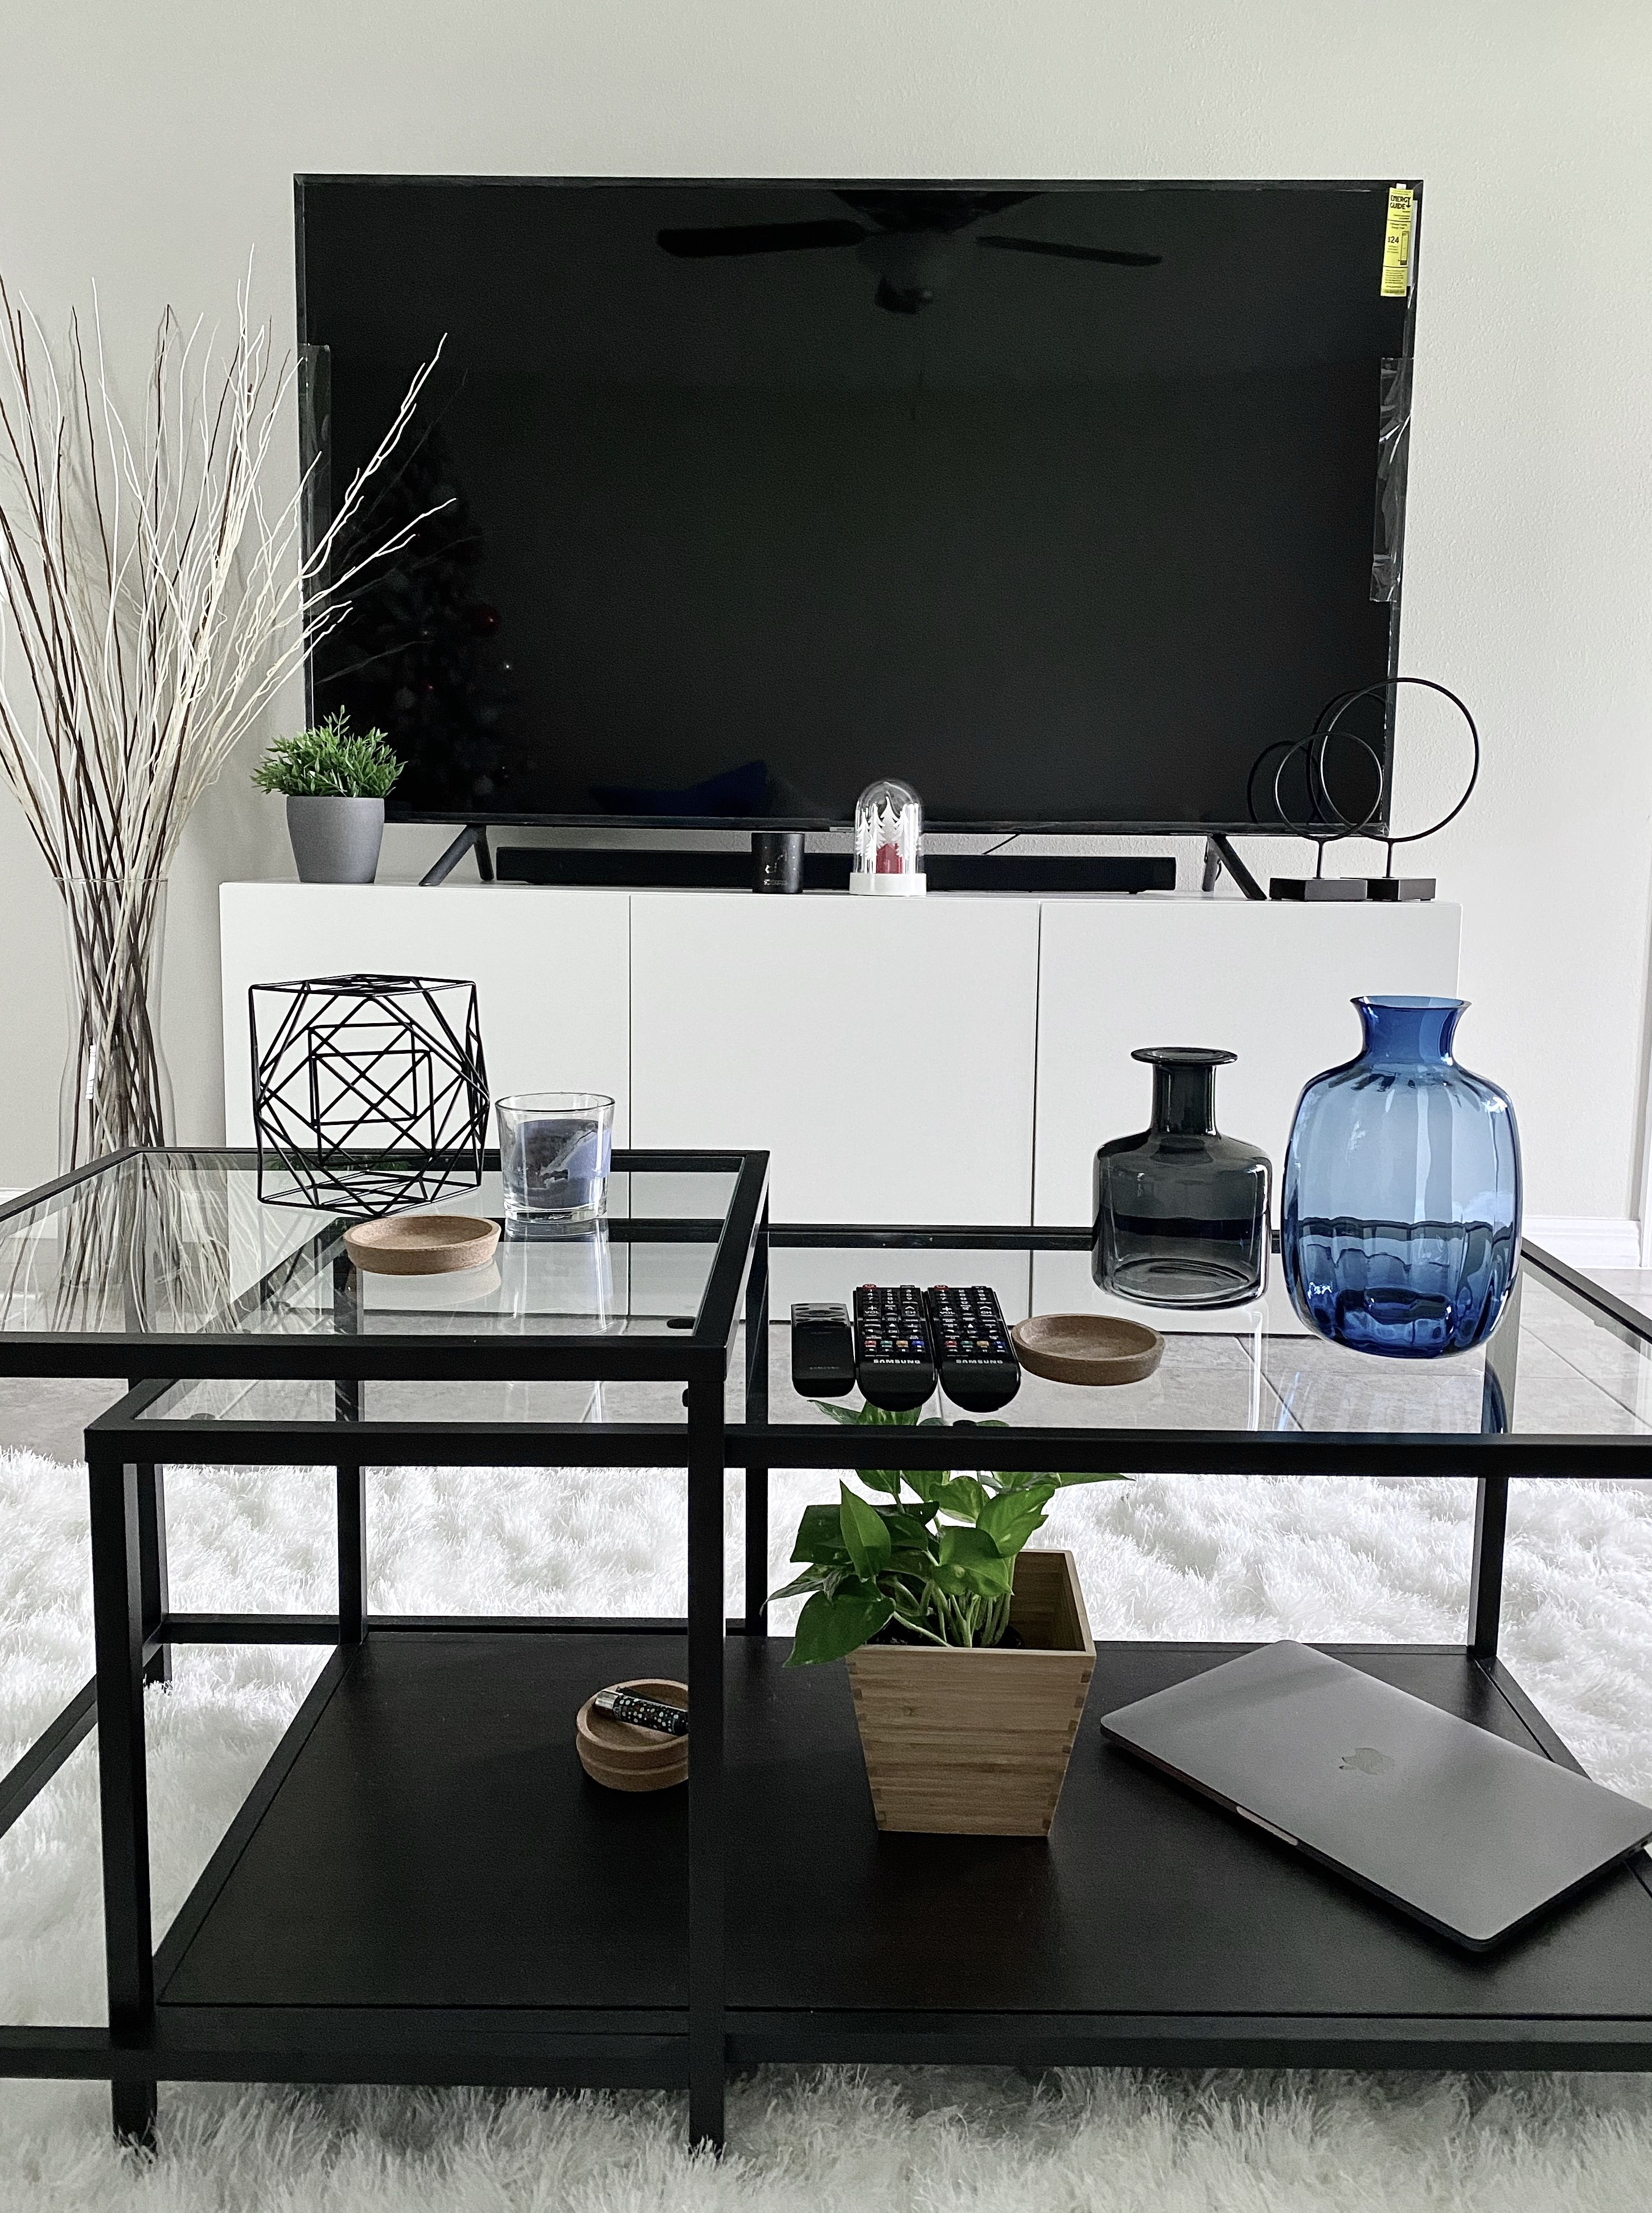 Professional Room Designer: This Decor Is A Modern And Minimalist Design. It Is Budget